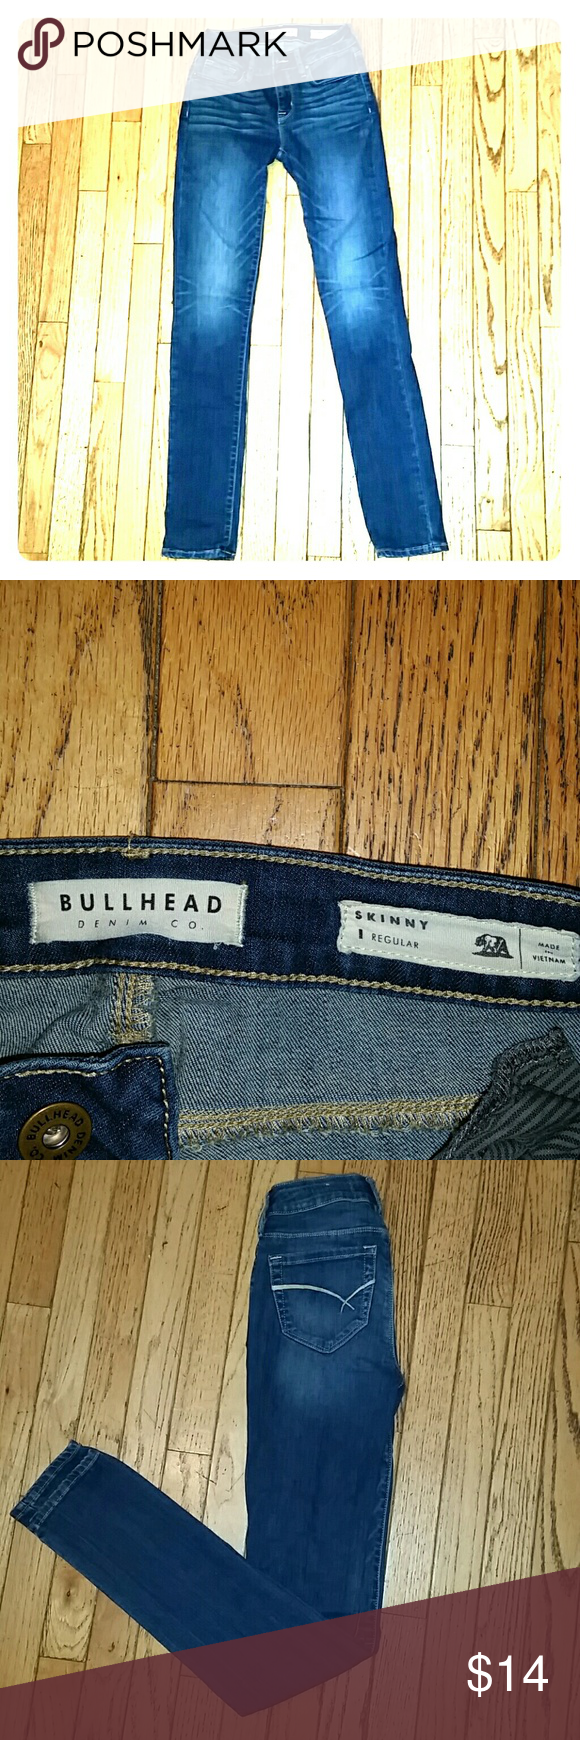 BULLHEAD denim co. skinny jeans Size 1 regular.  78 % cotton 21% polyester 1% spandex Great condition.  Fits to me more like a 0 than 1. Bullhead Jeans Skinny